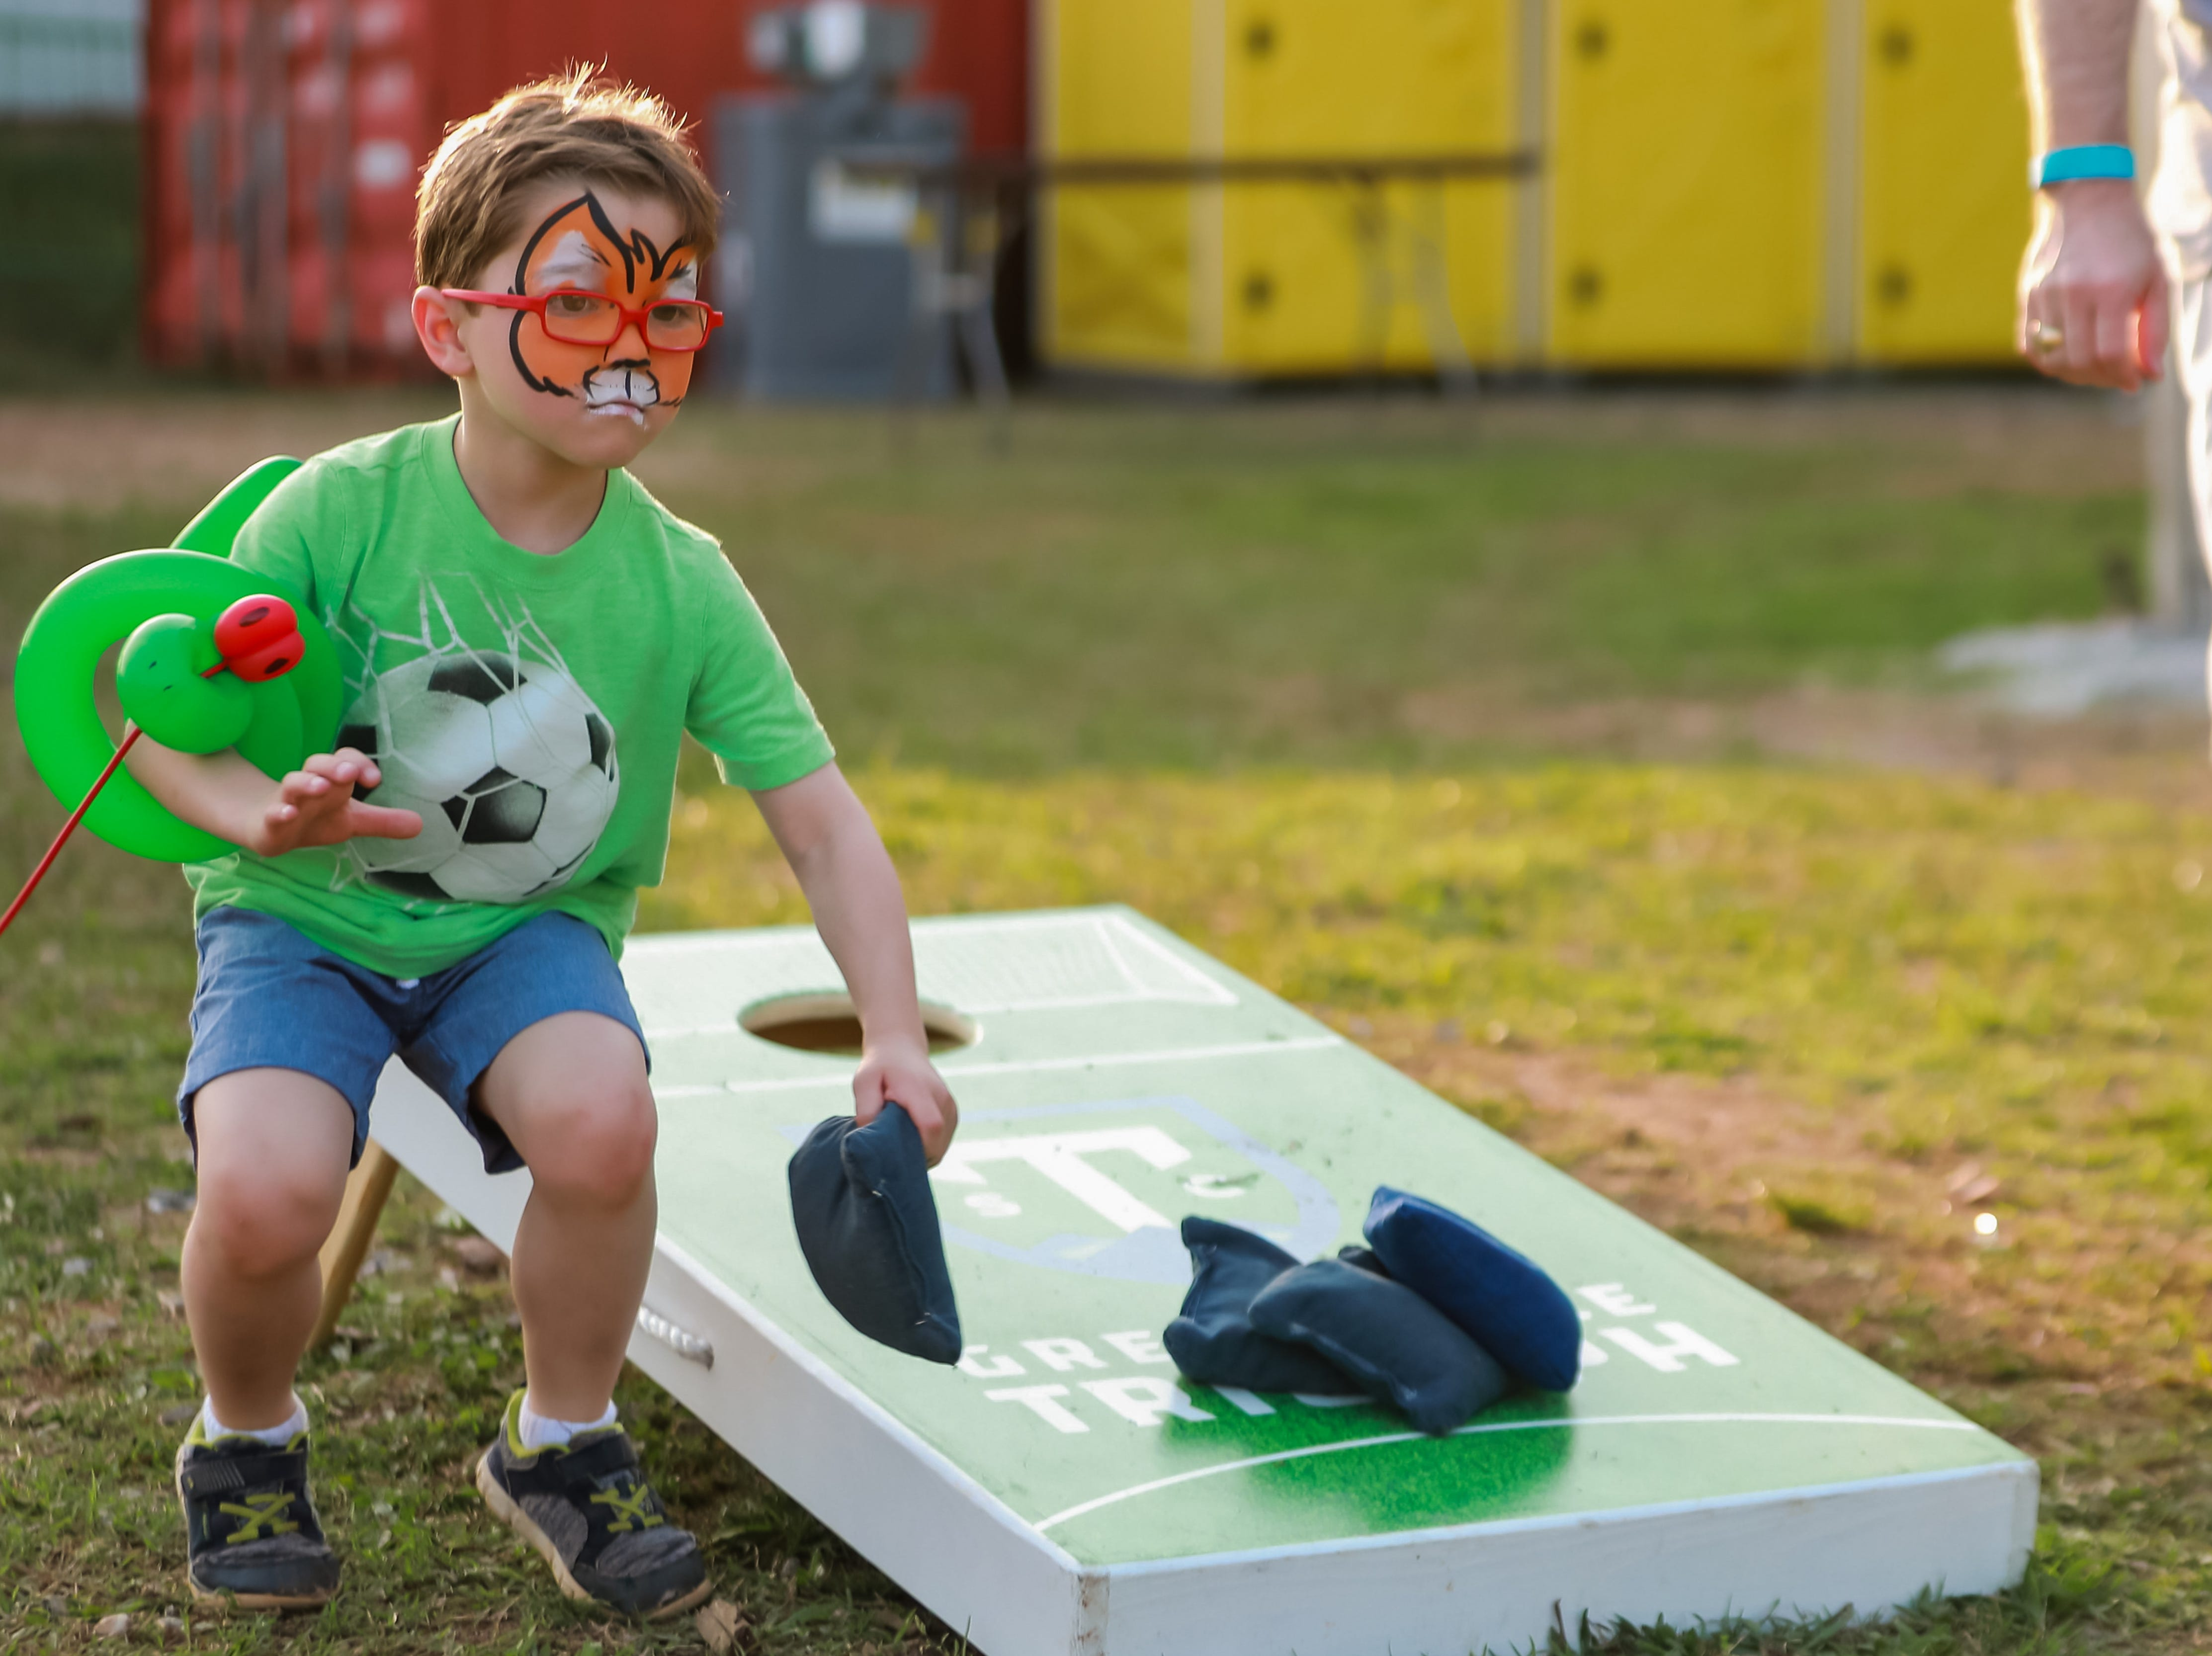 Joshua Biencowe, 6, plays a little corn hole ahead of Greenville Triumph Soccer Club's second home game at Legacy Early College on April 13 at 7 p.m. against the Chattanooga Red Wolves. This is the team's inaugural season.